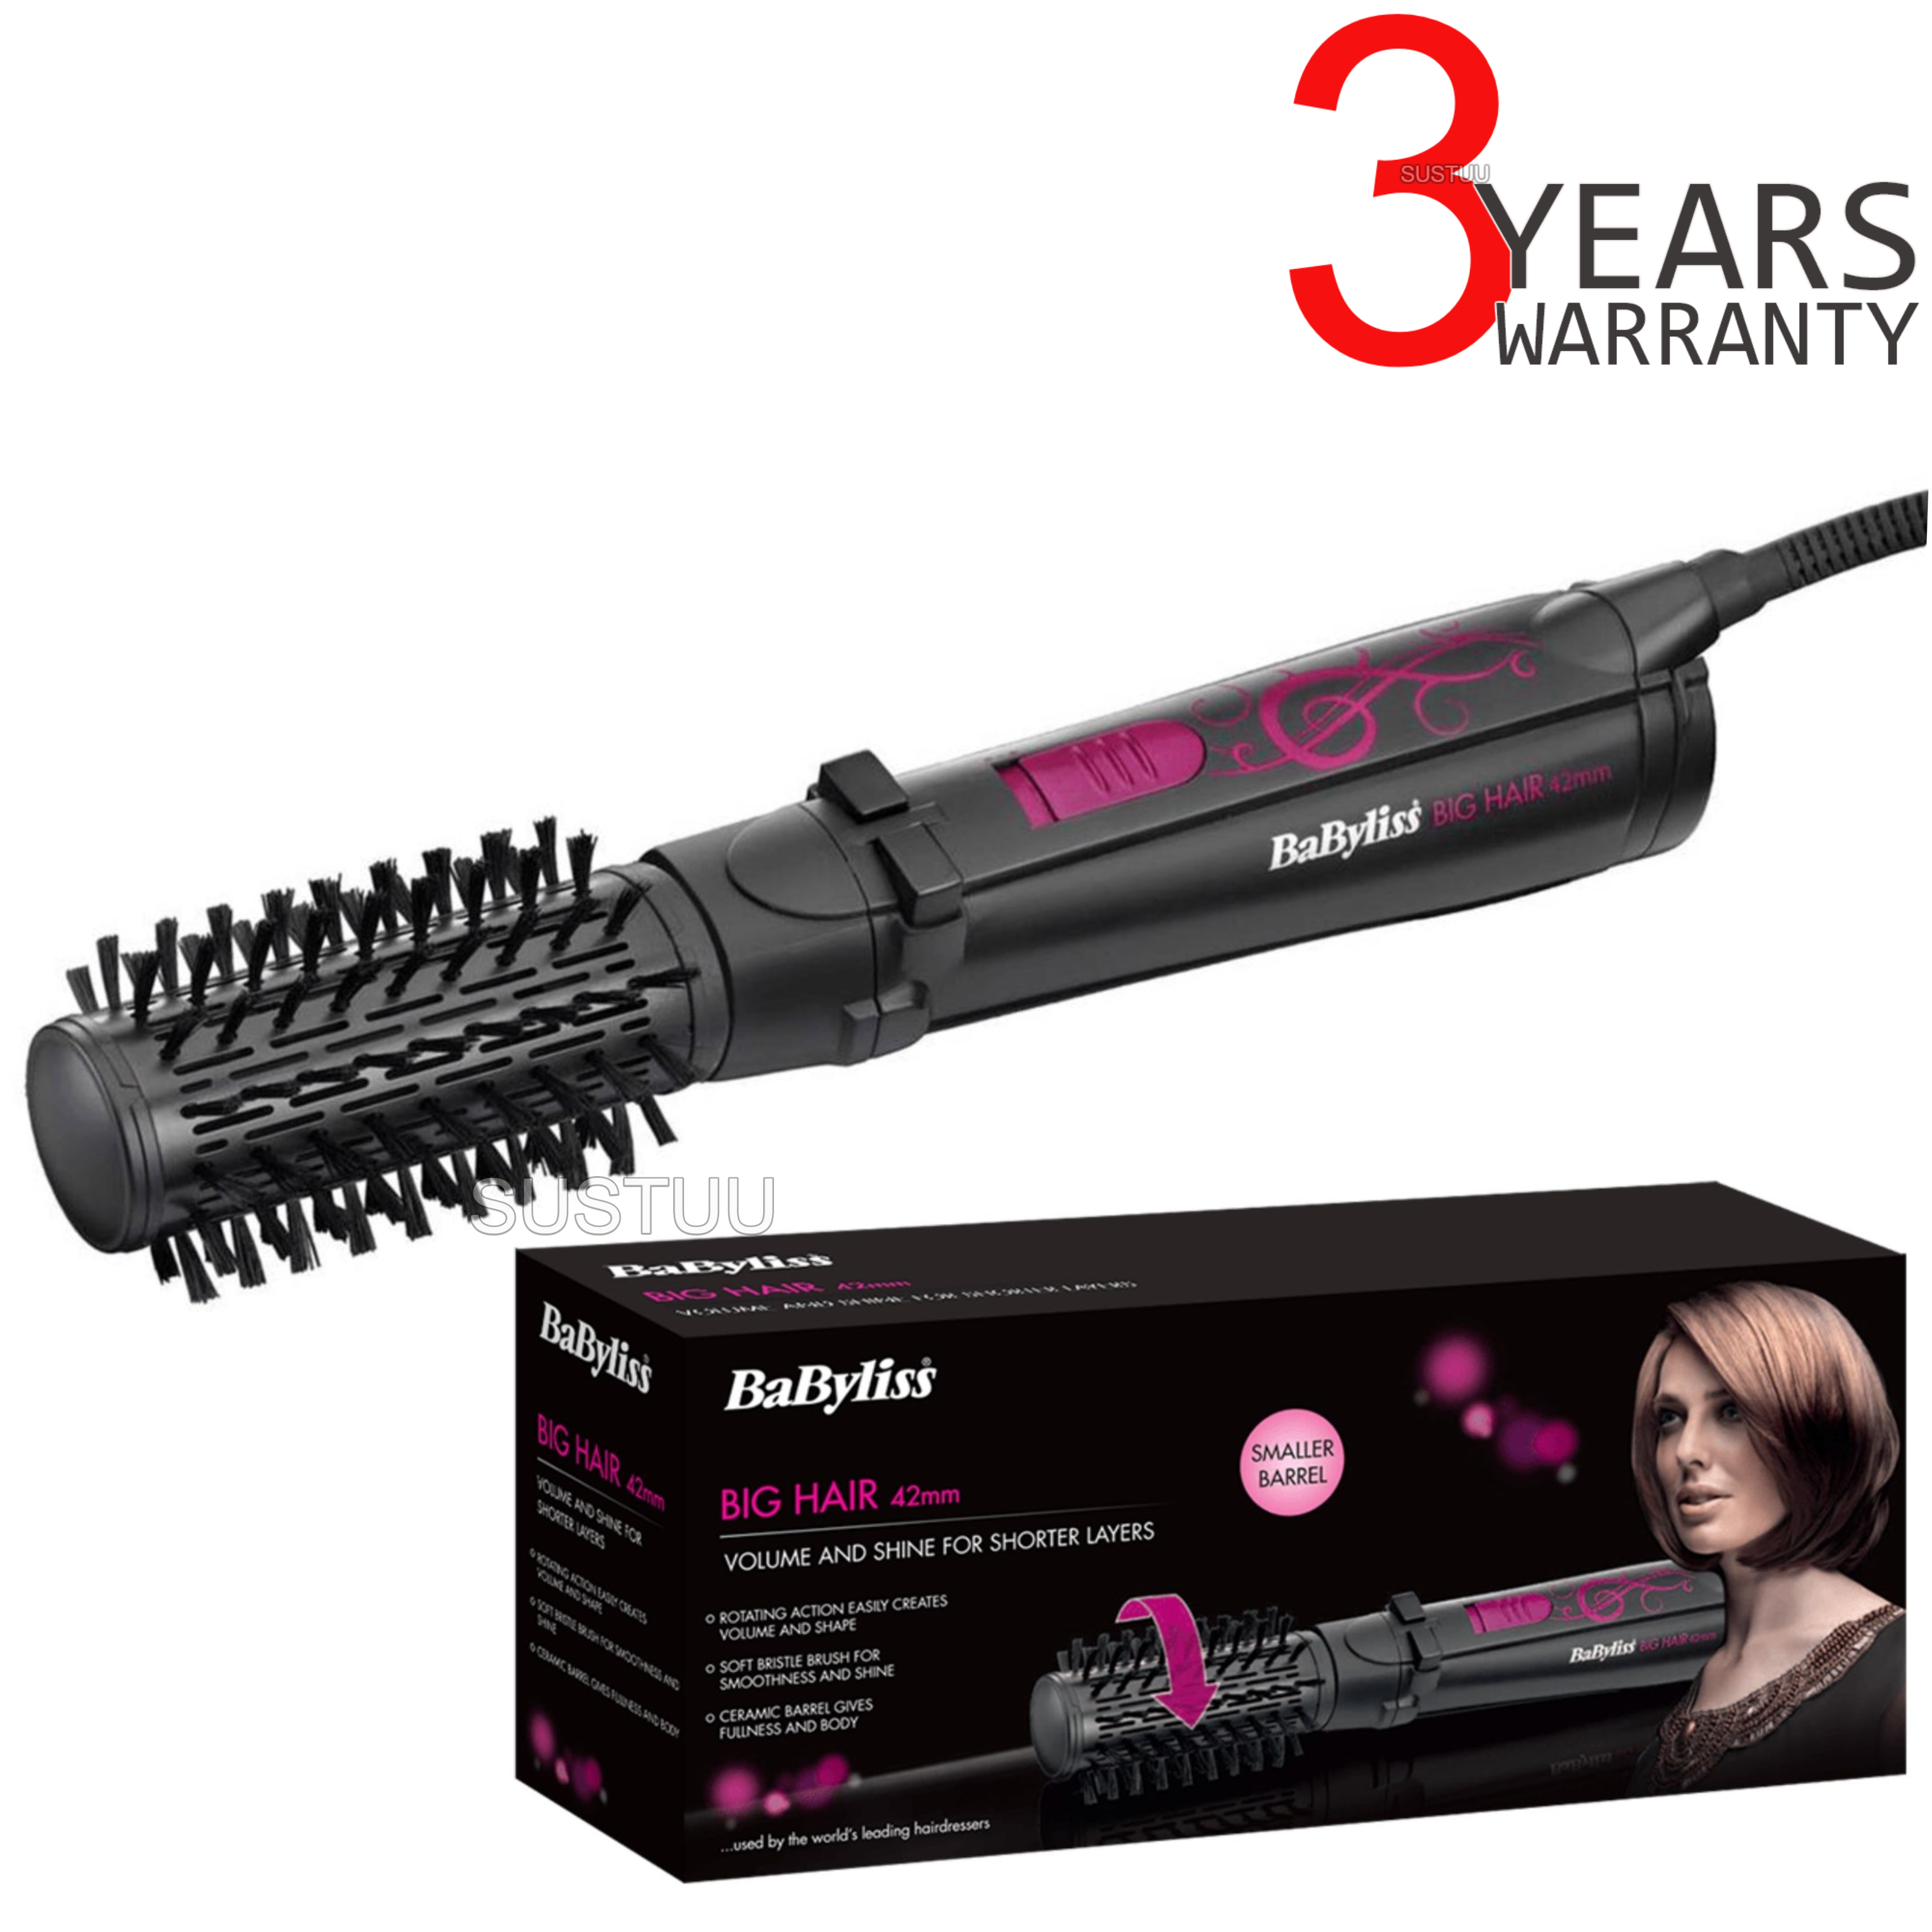 Babyliss 2777U Big Hair Rotating Styler|42mm Ceramic Barrel|Bristle Brush|700W|